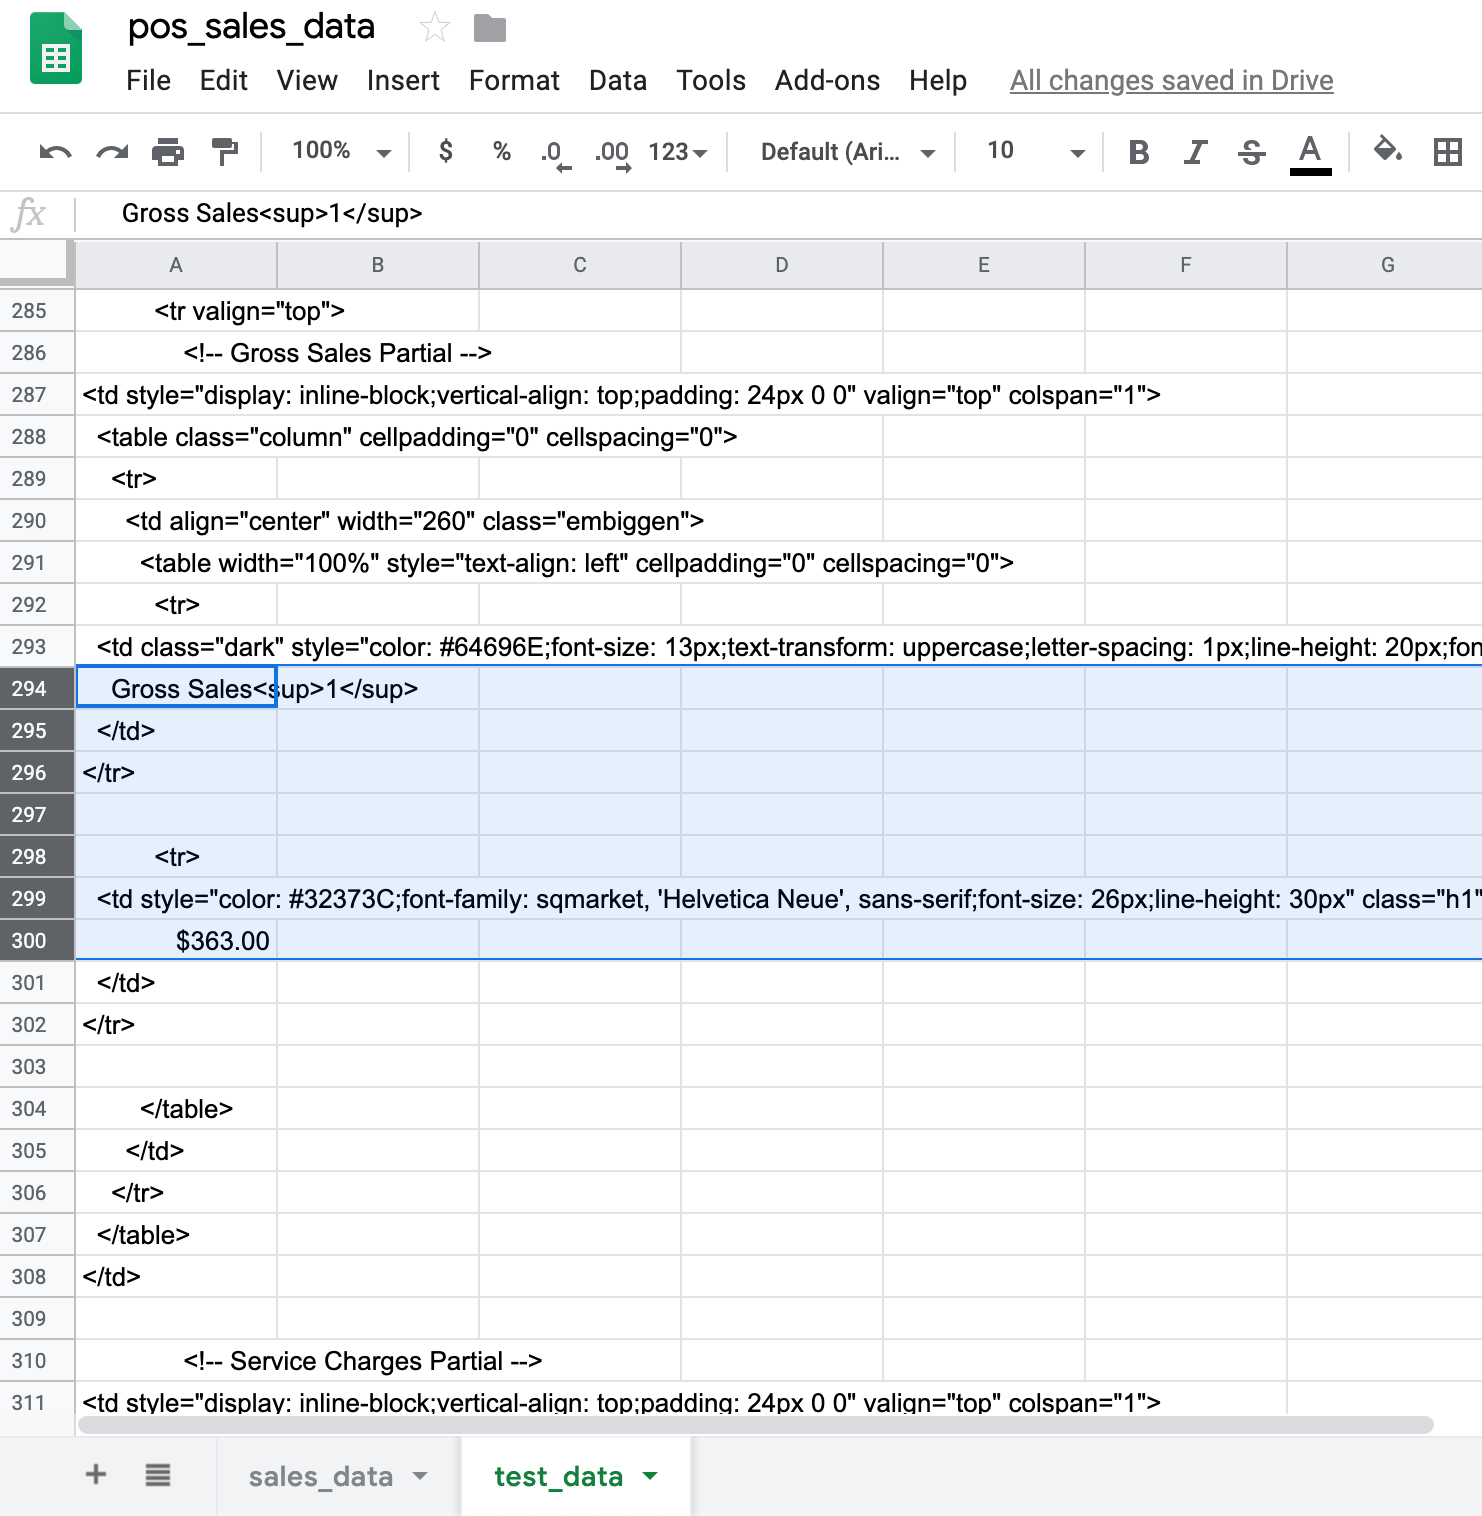 Automating Workflows Gt Pos Data To Sheets Using An